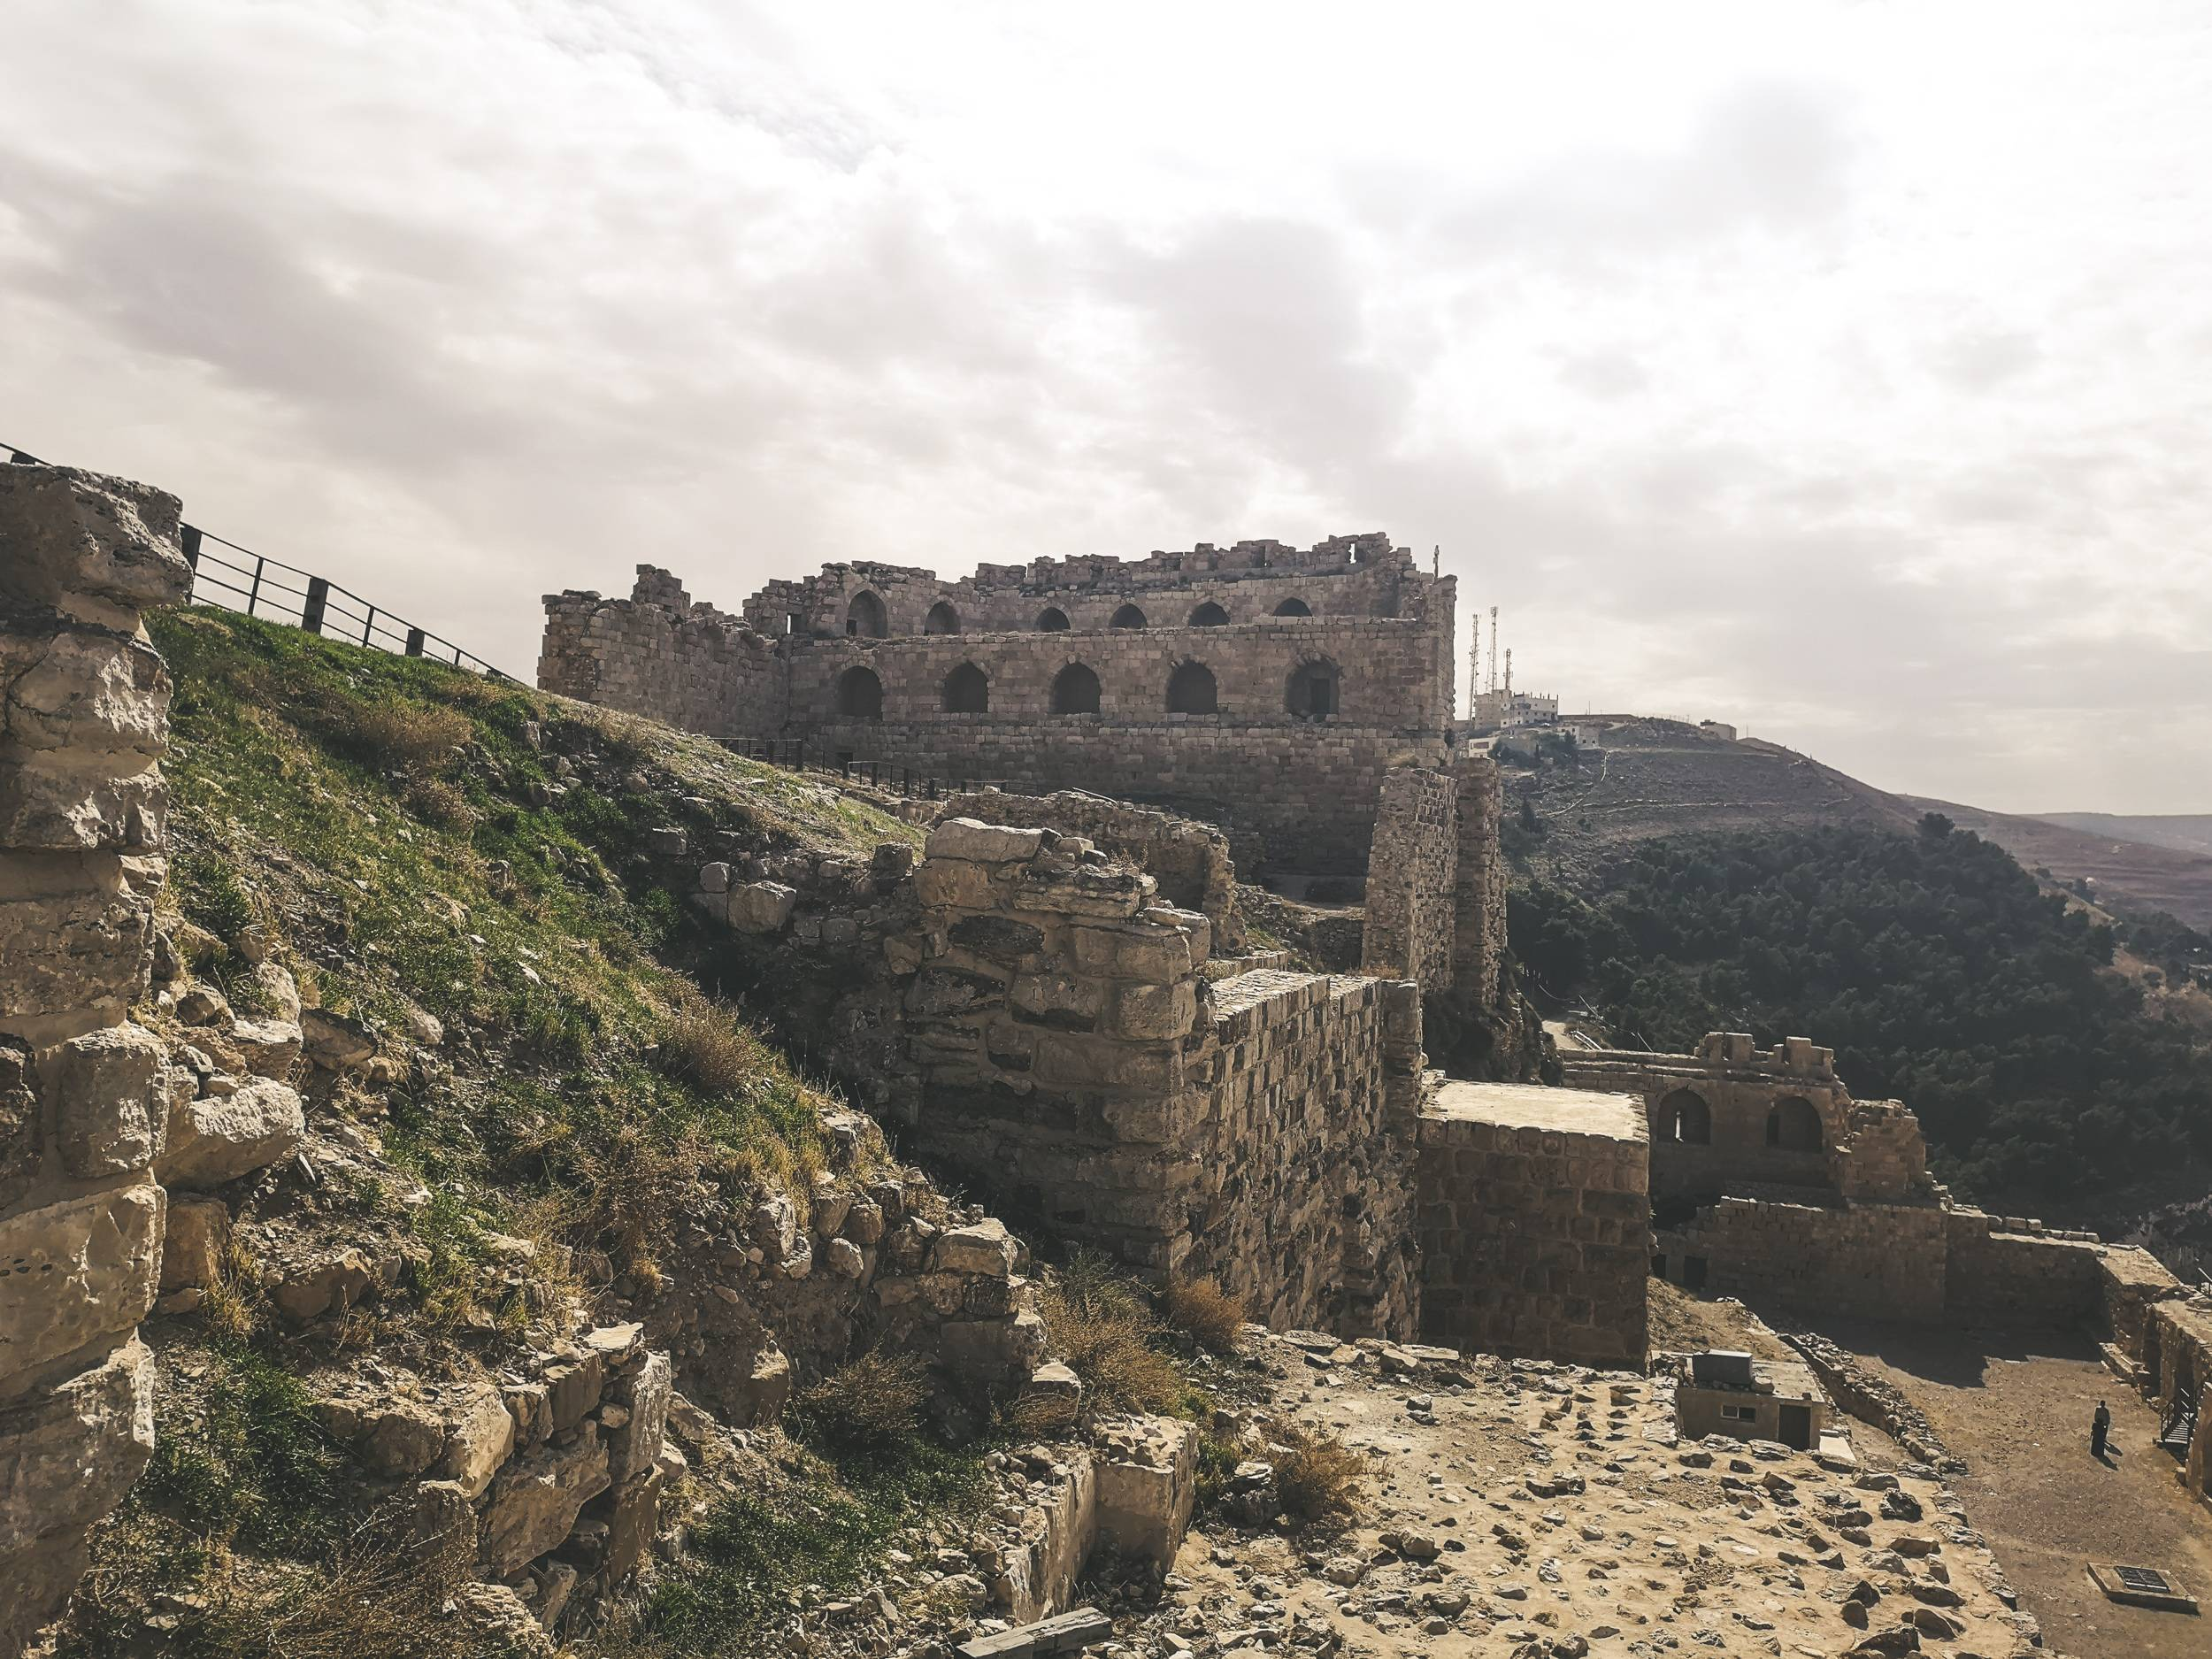 Al-Karak castle was built on the top of Moab Temple. Photo by Alis Monte [CC BY-SA 4.0], via Connecting the Dots